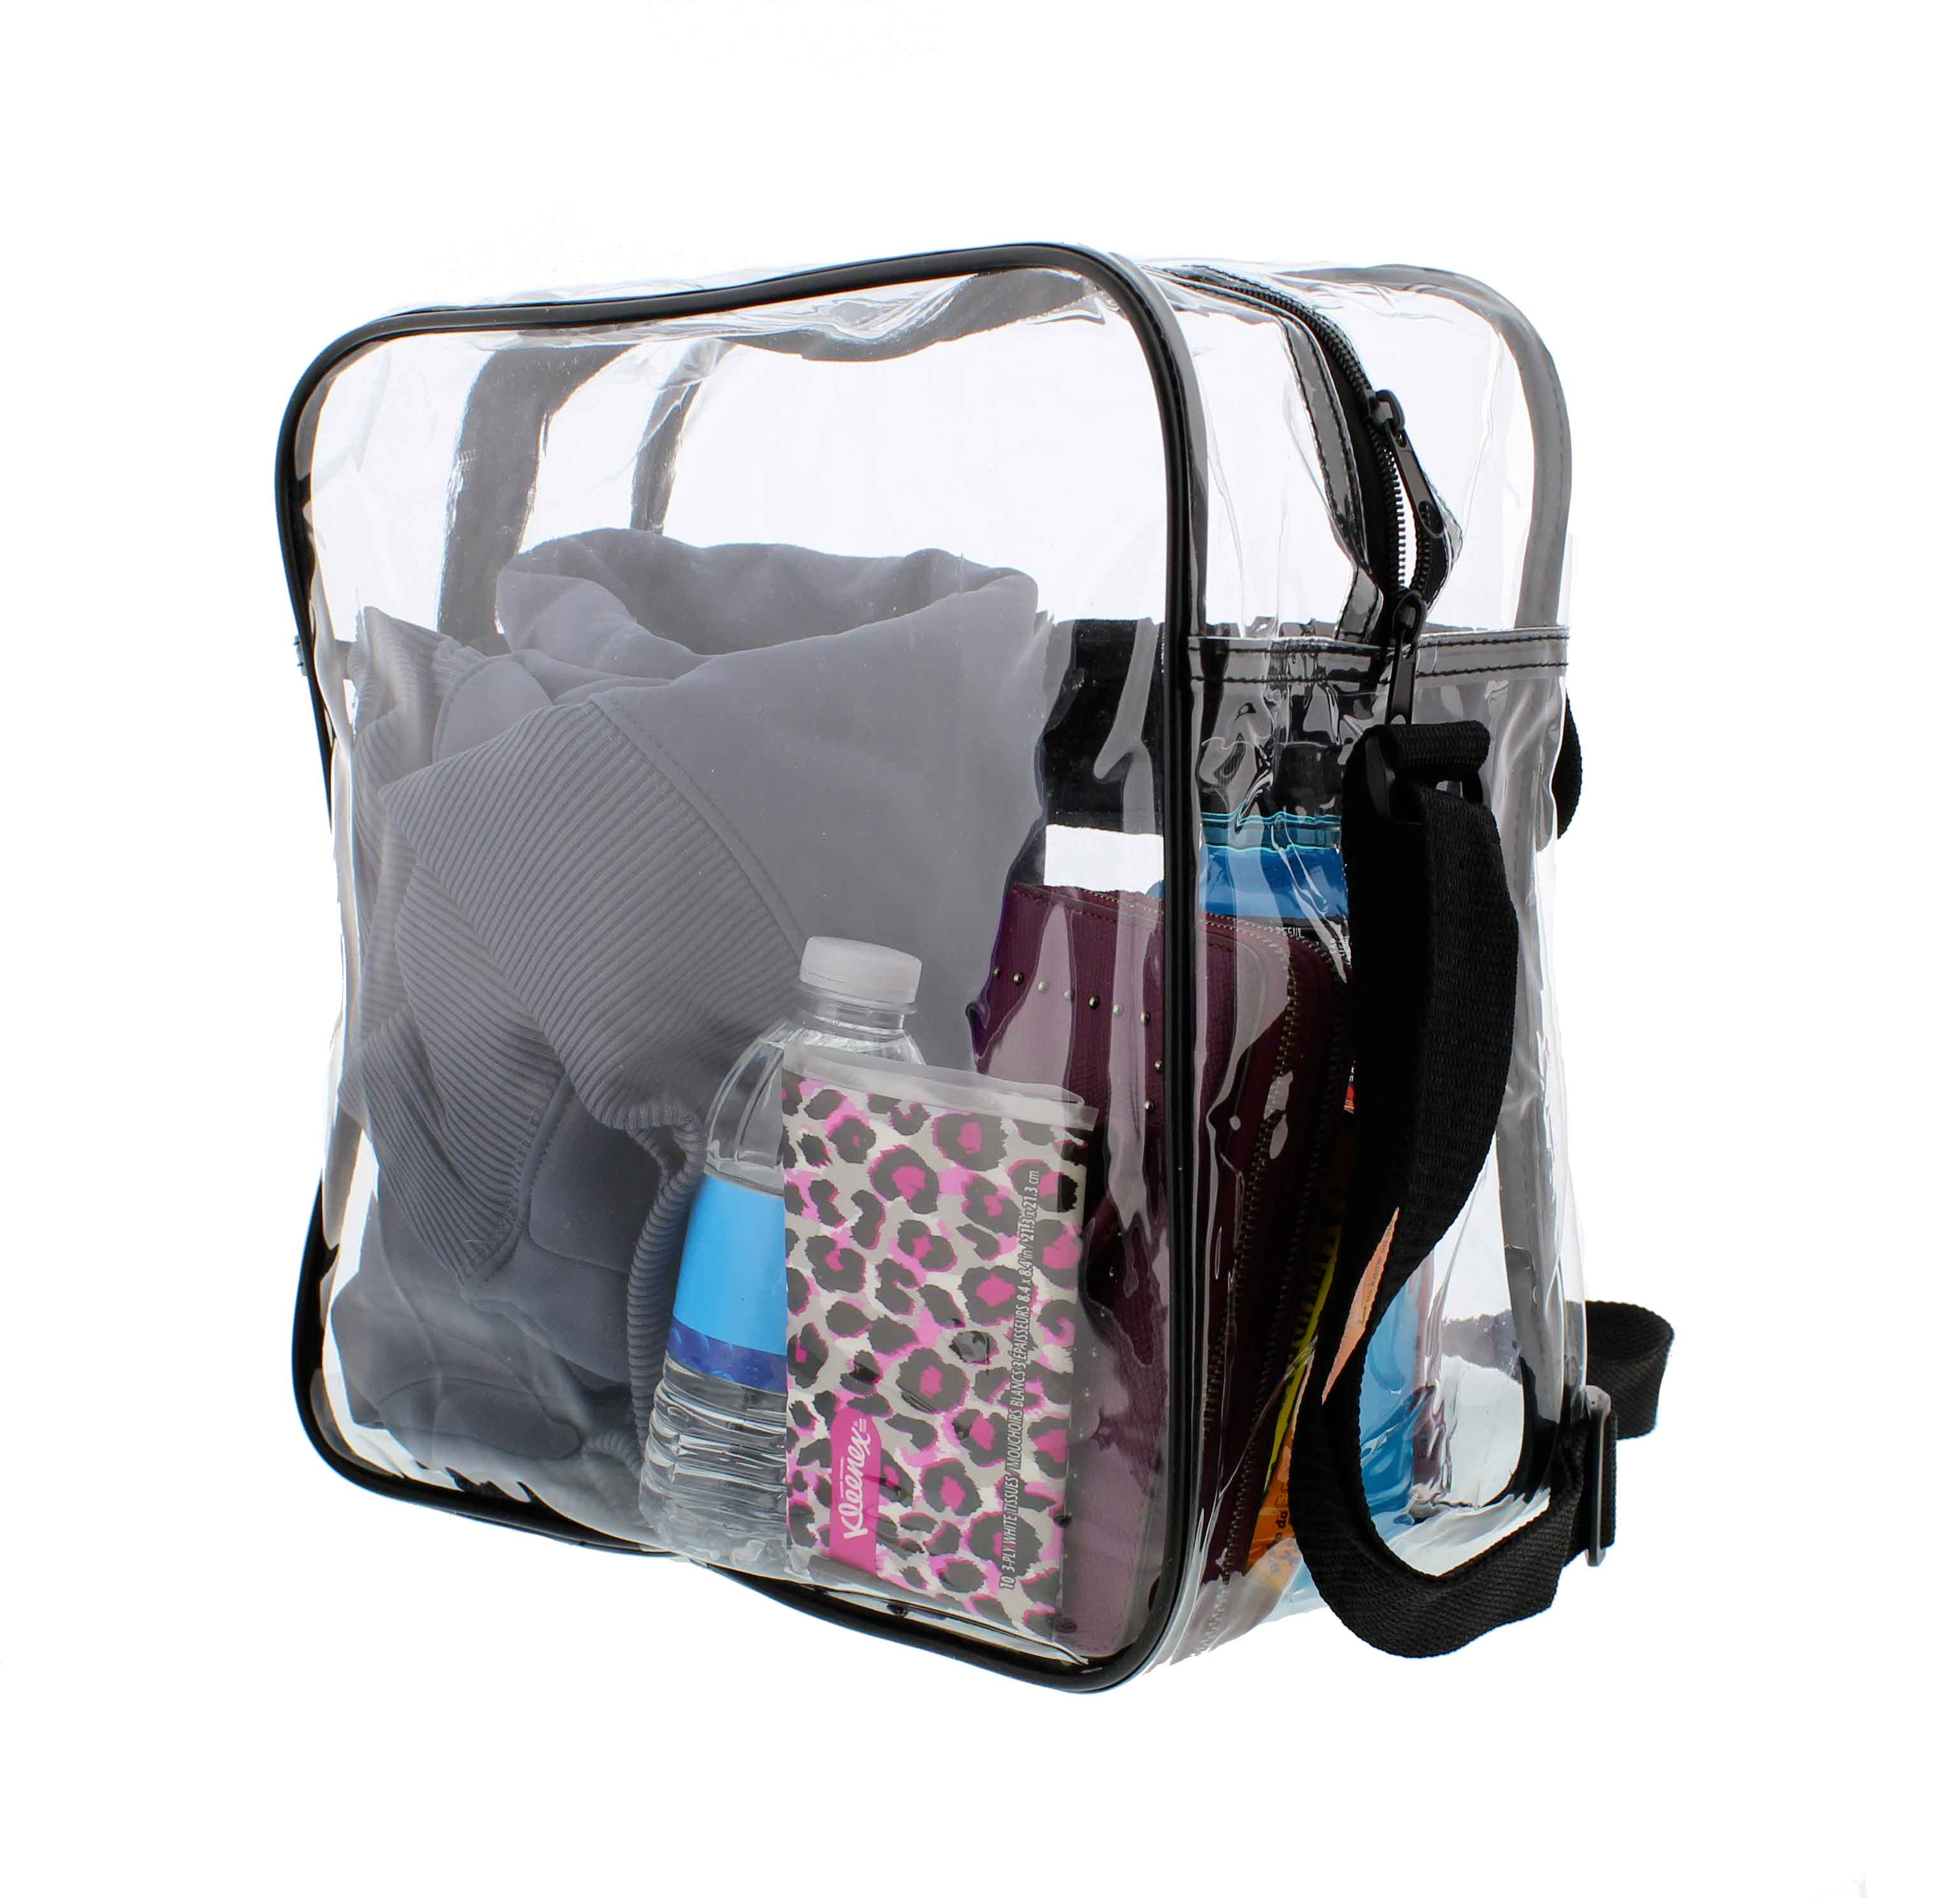 Clear-Purse-NFL-Stadium-Approved-Bag-with-Zipper-and-Shoulder-Strap thumbnail 23